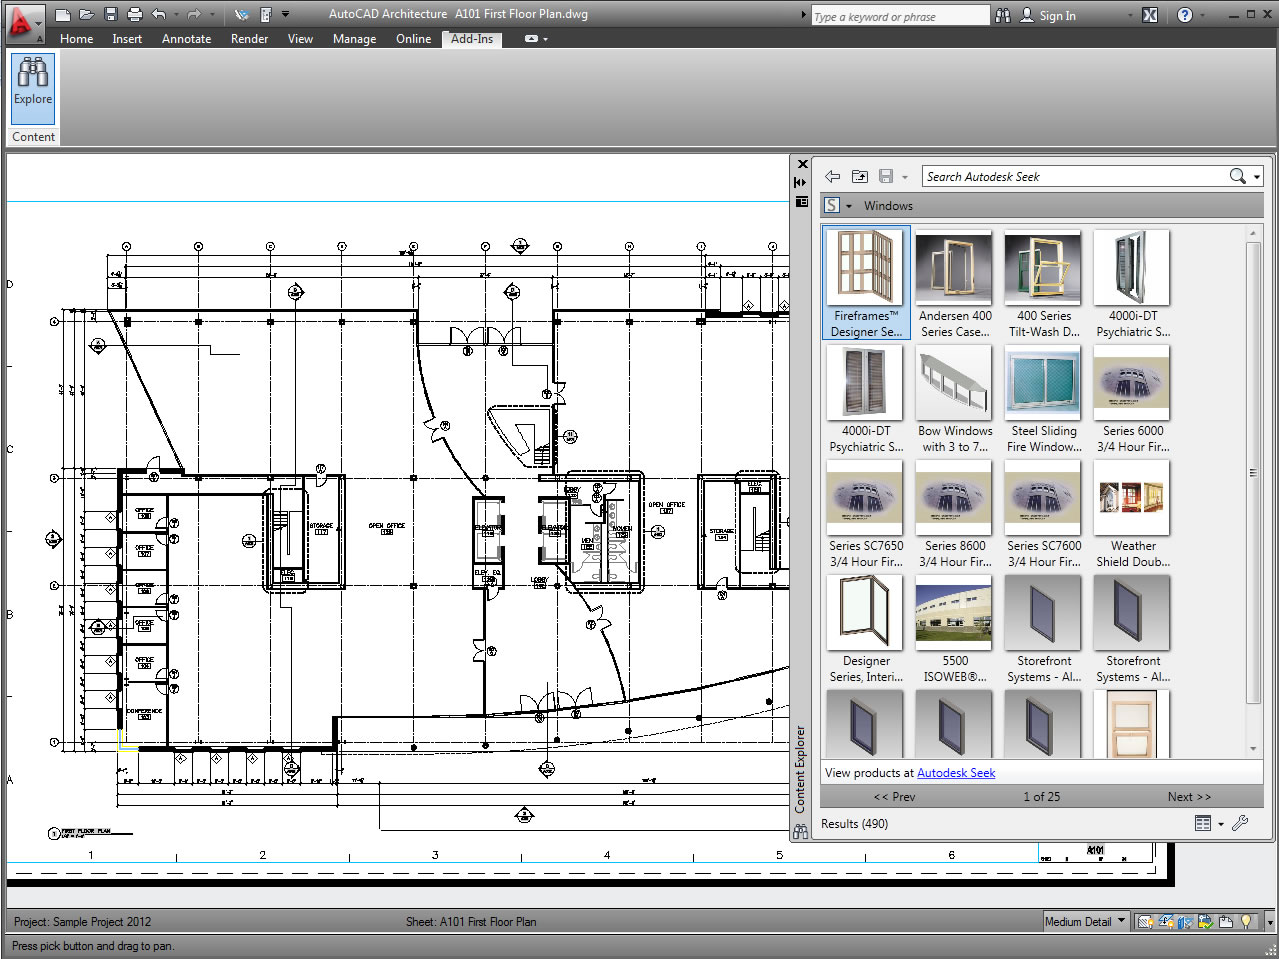 AutoCAD Architecture 2011 Download for free